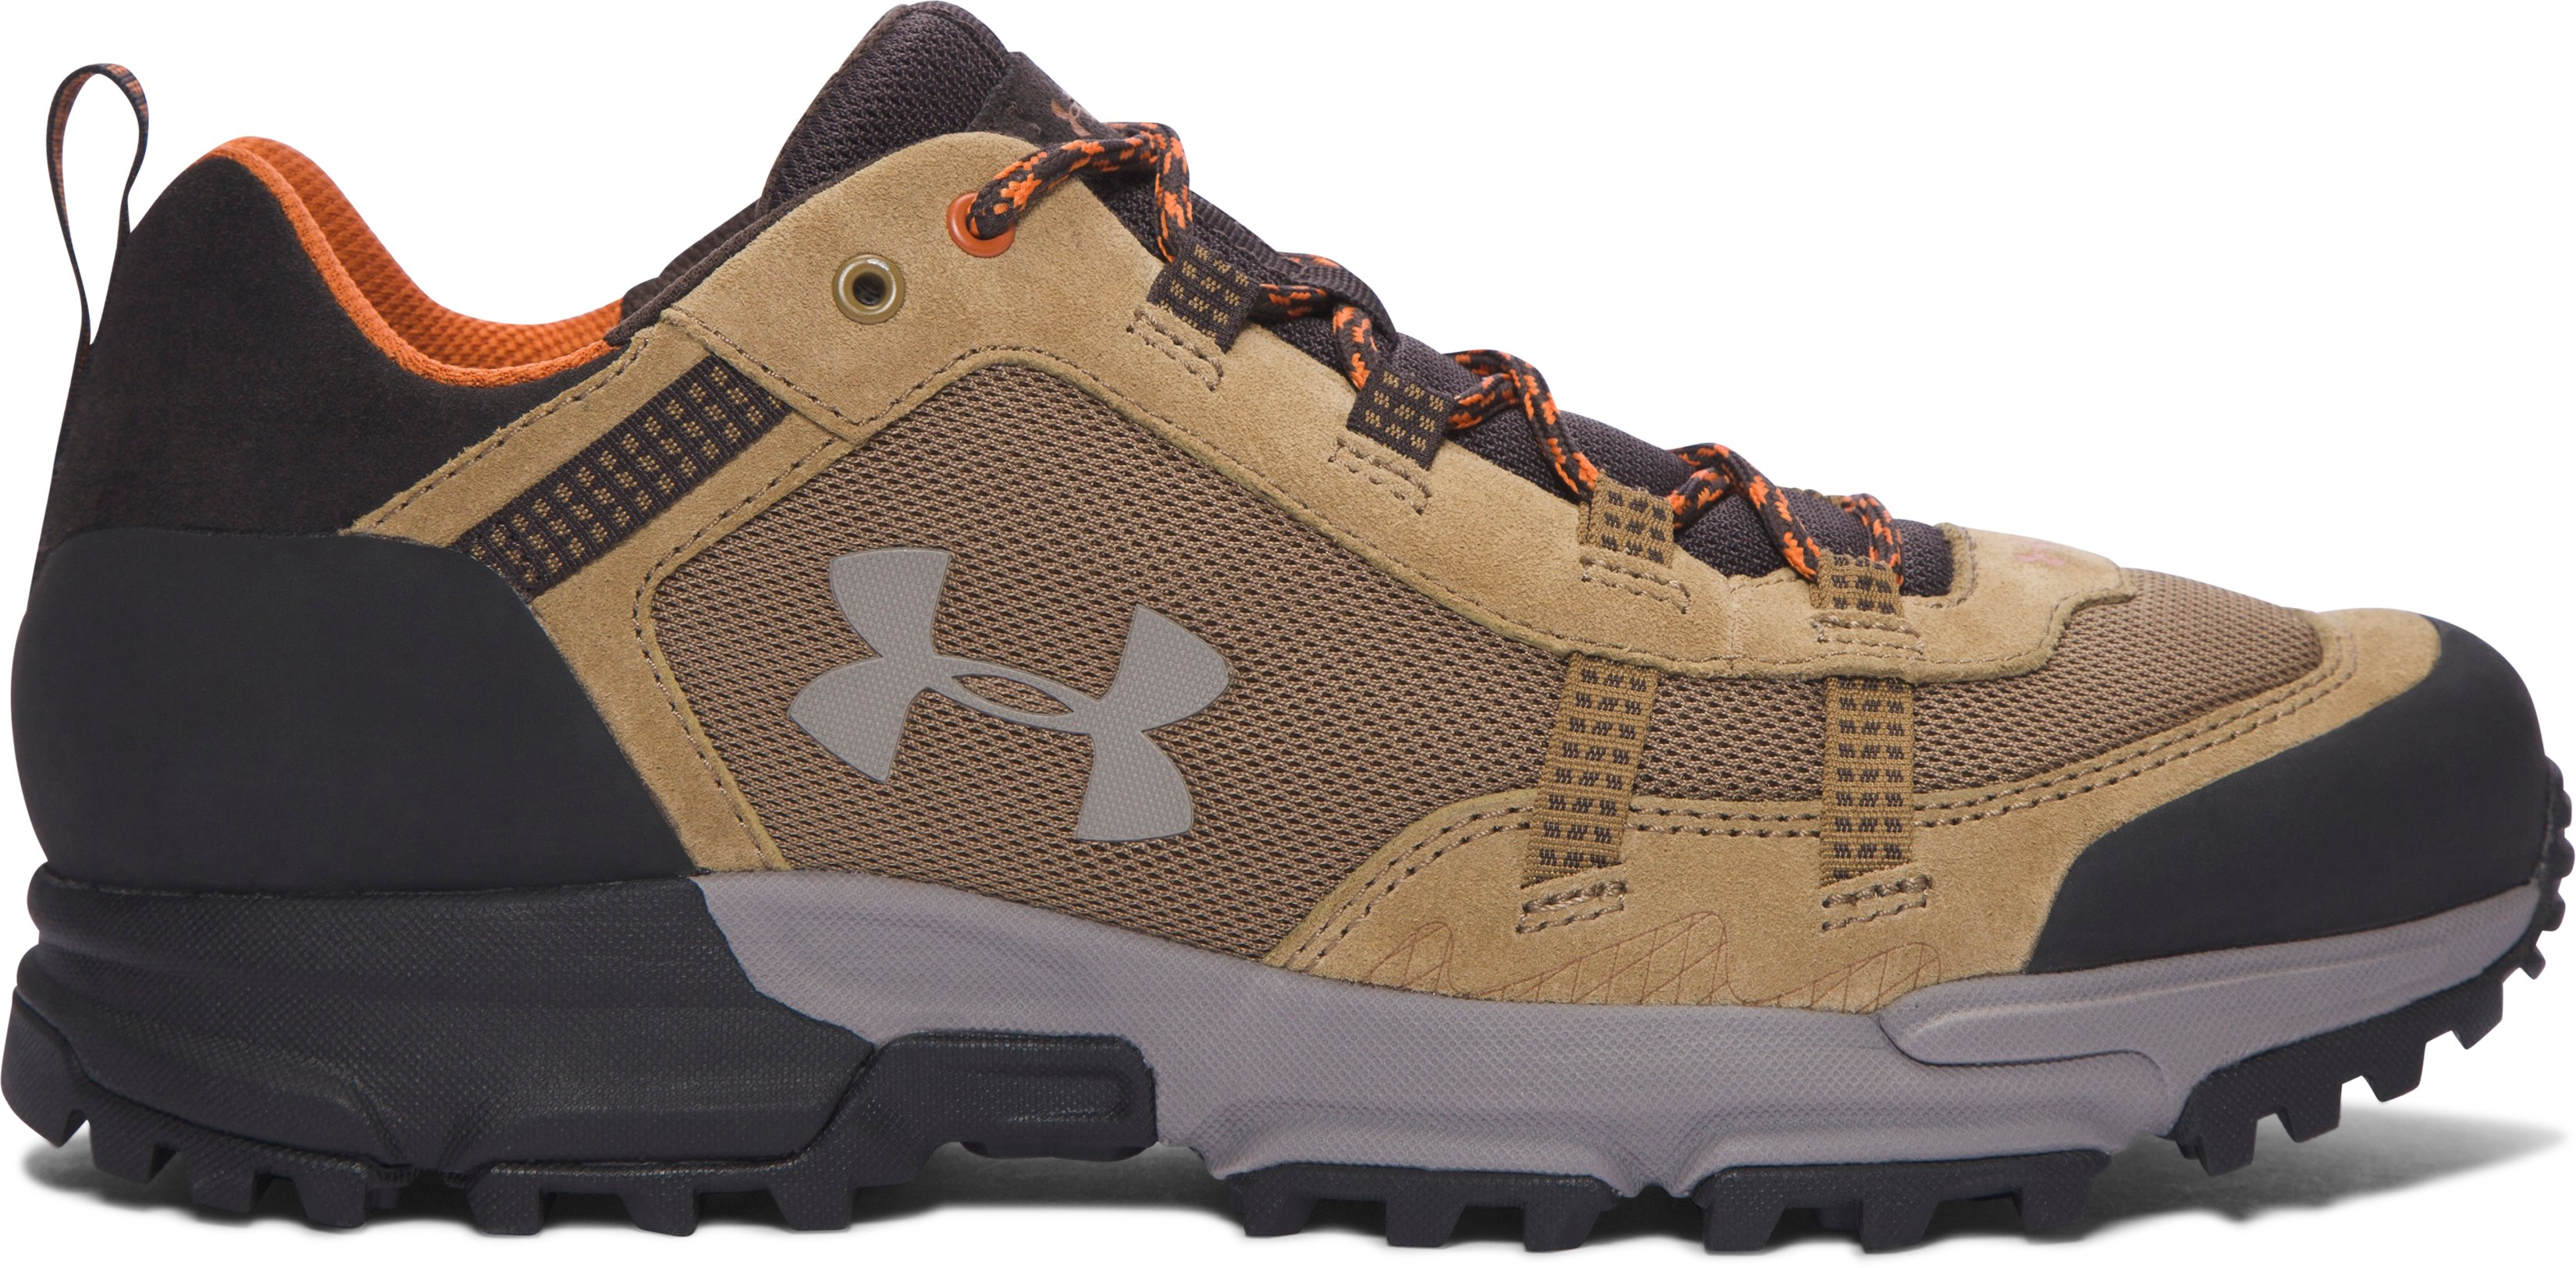 Men's UA Post Canyon Low Hiking Boots, Saddle